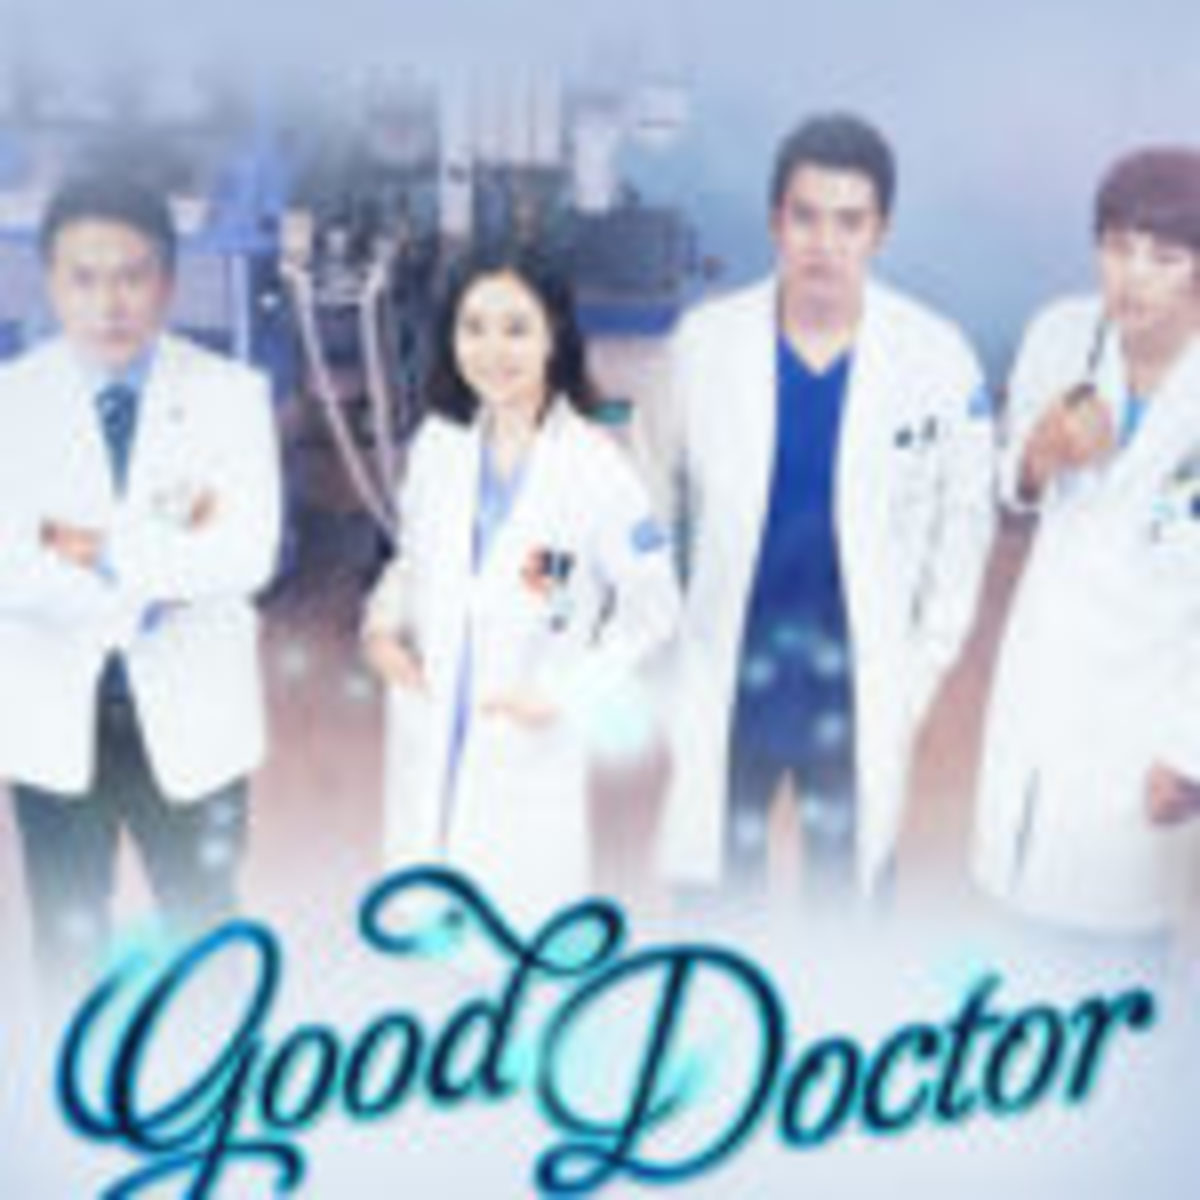 The Good Doctor (South Korean TV series)